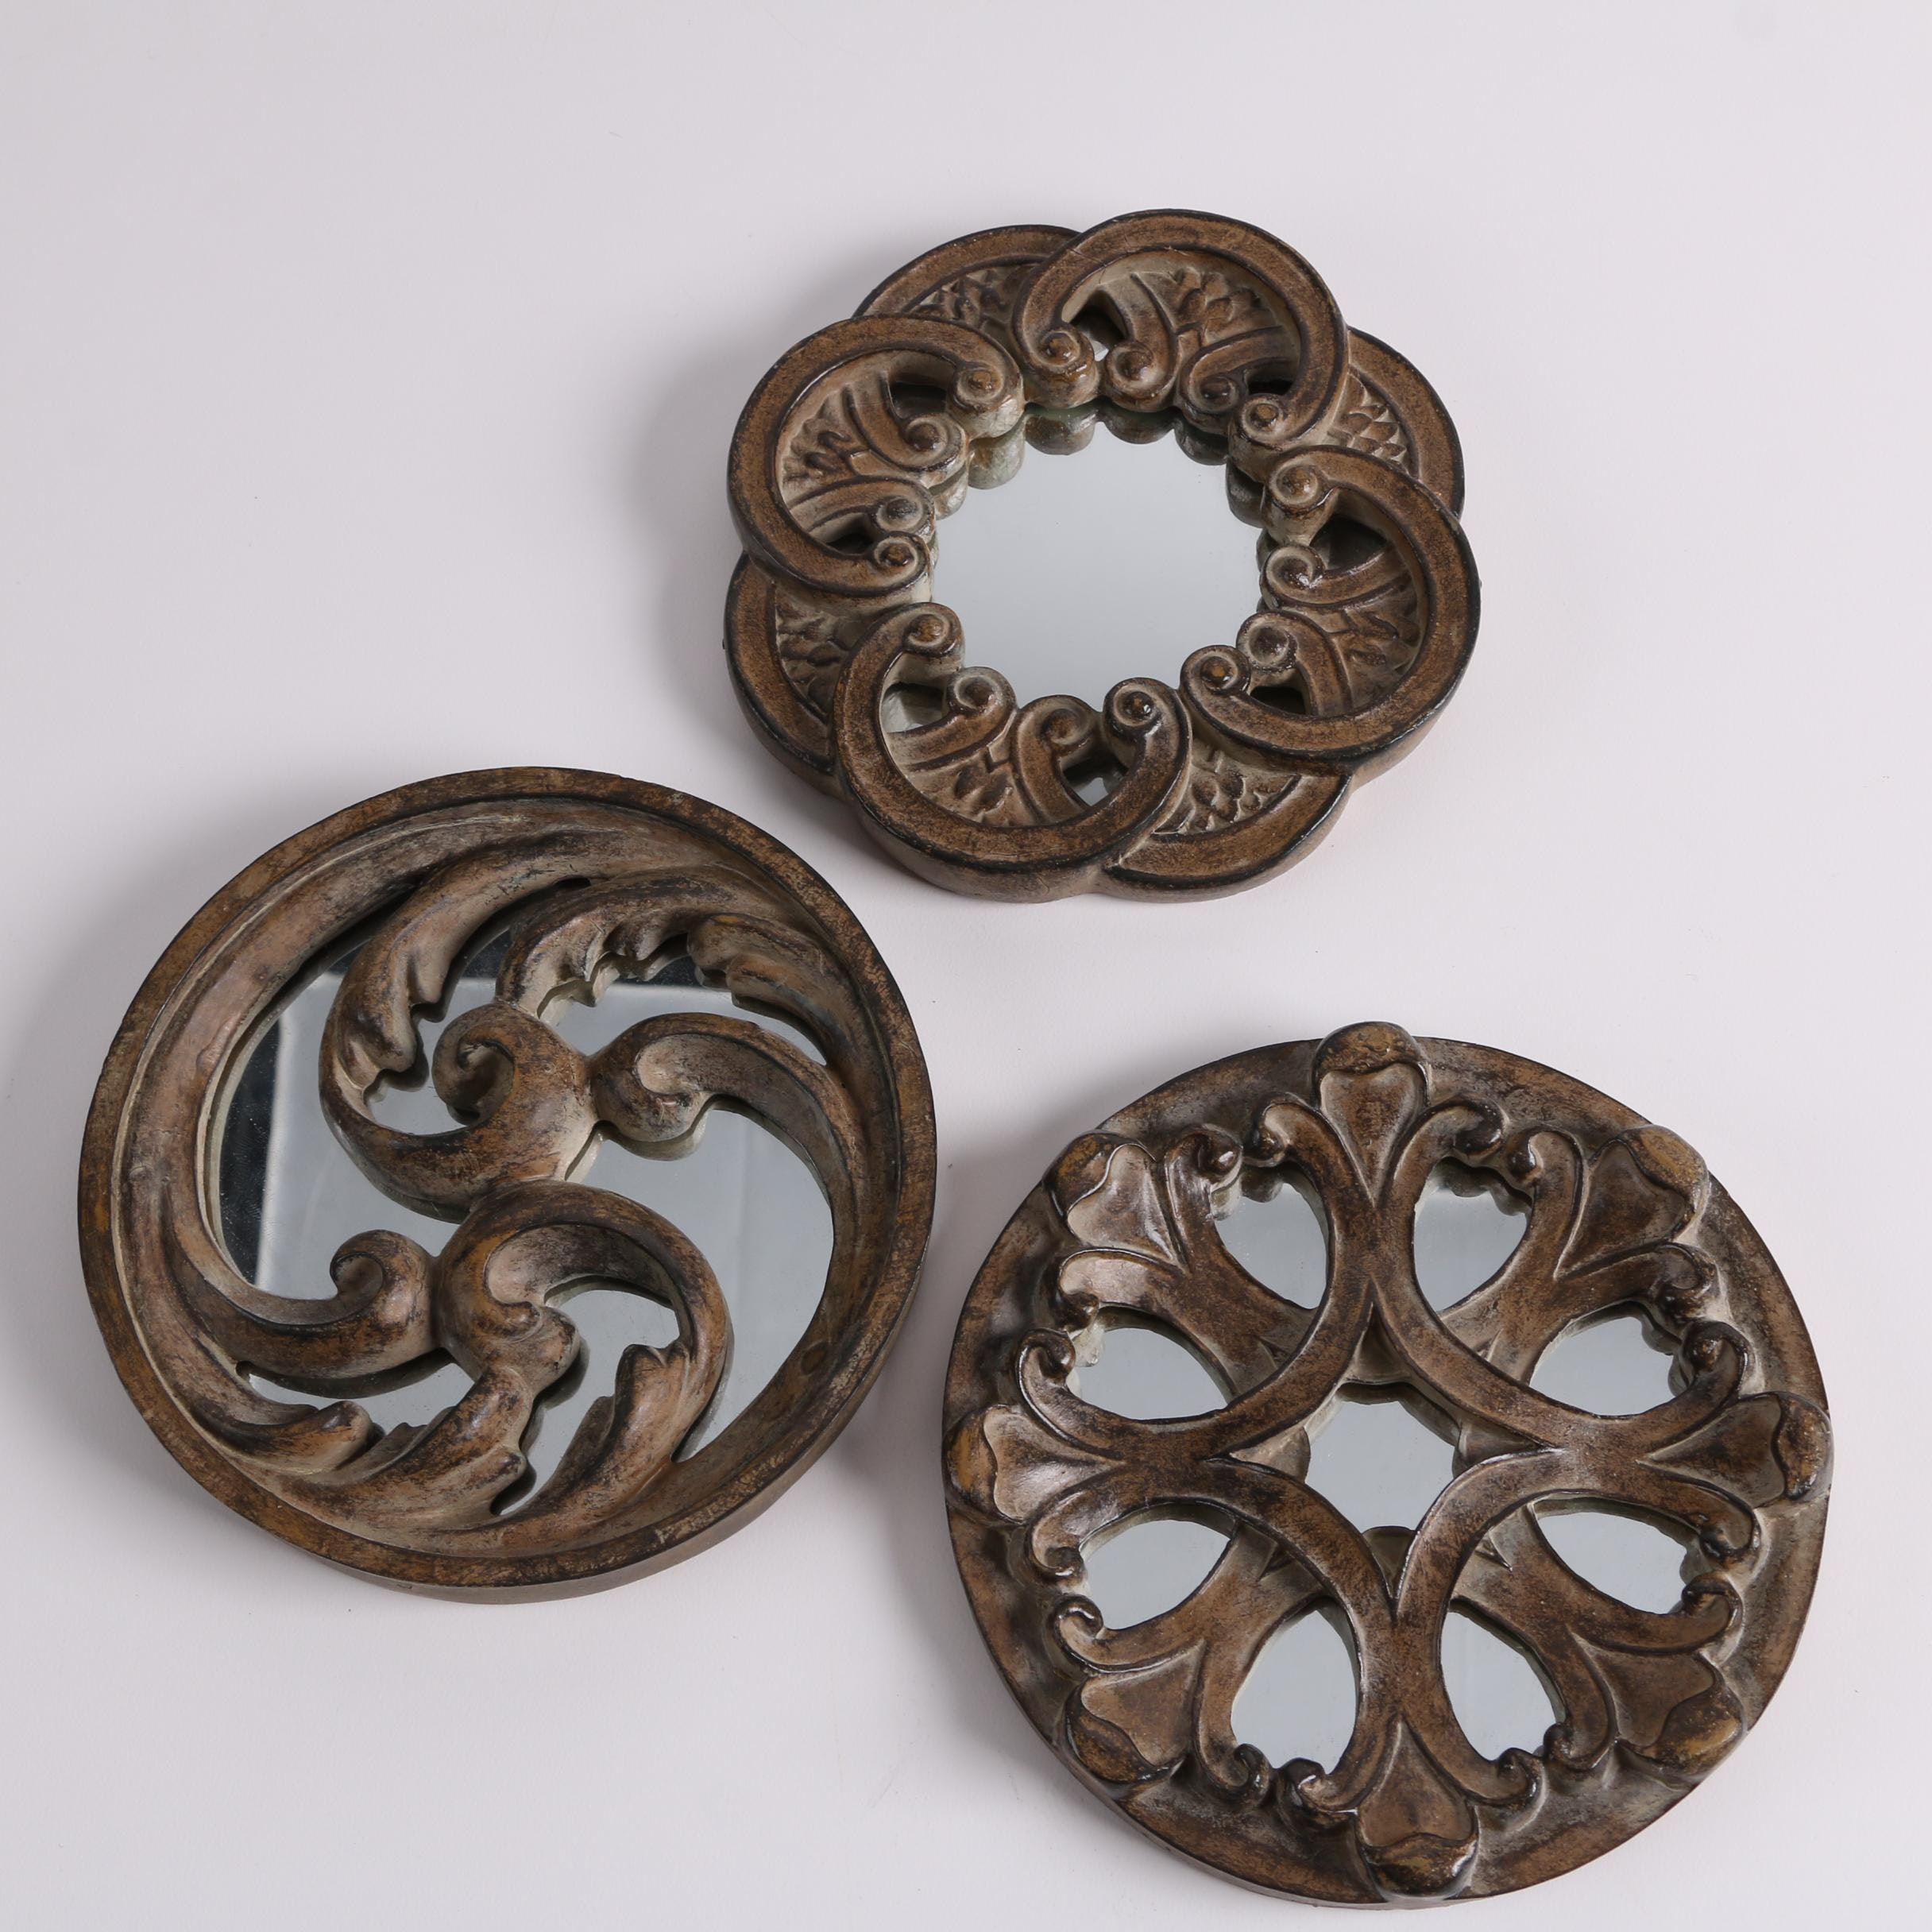 Decorative Wall Hangings with Mirror Backings